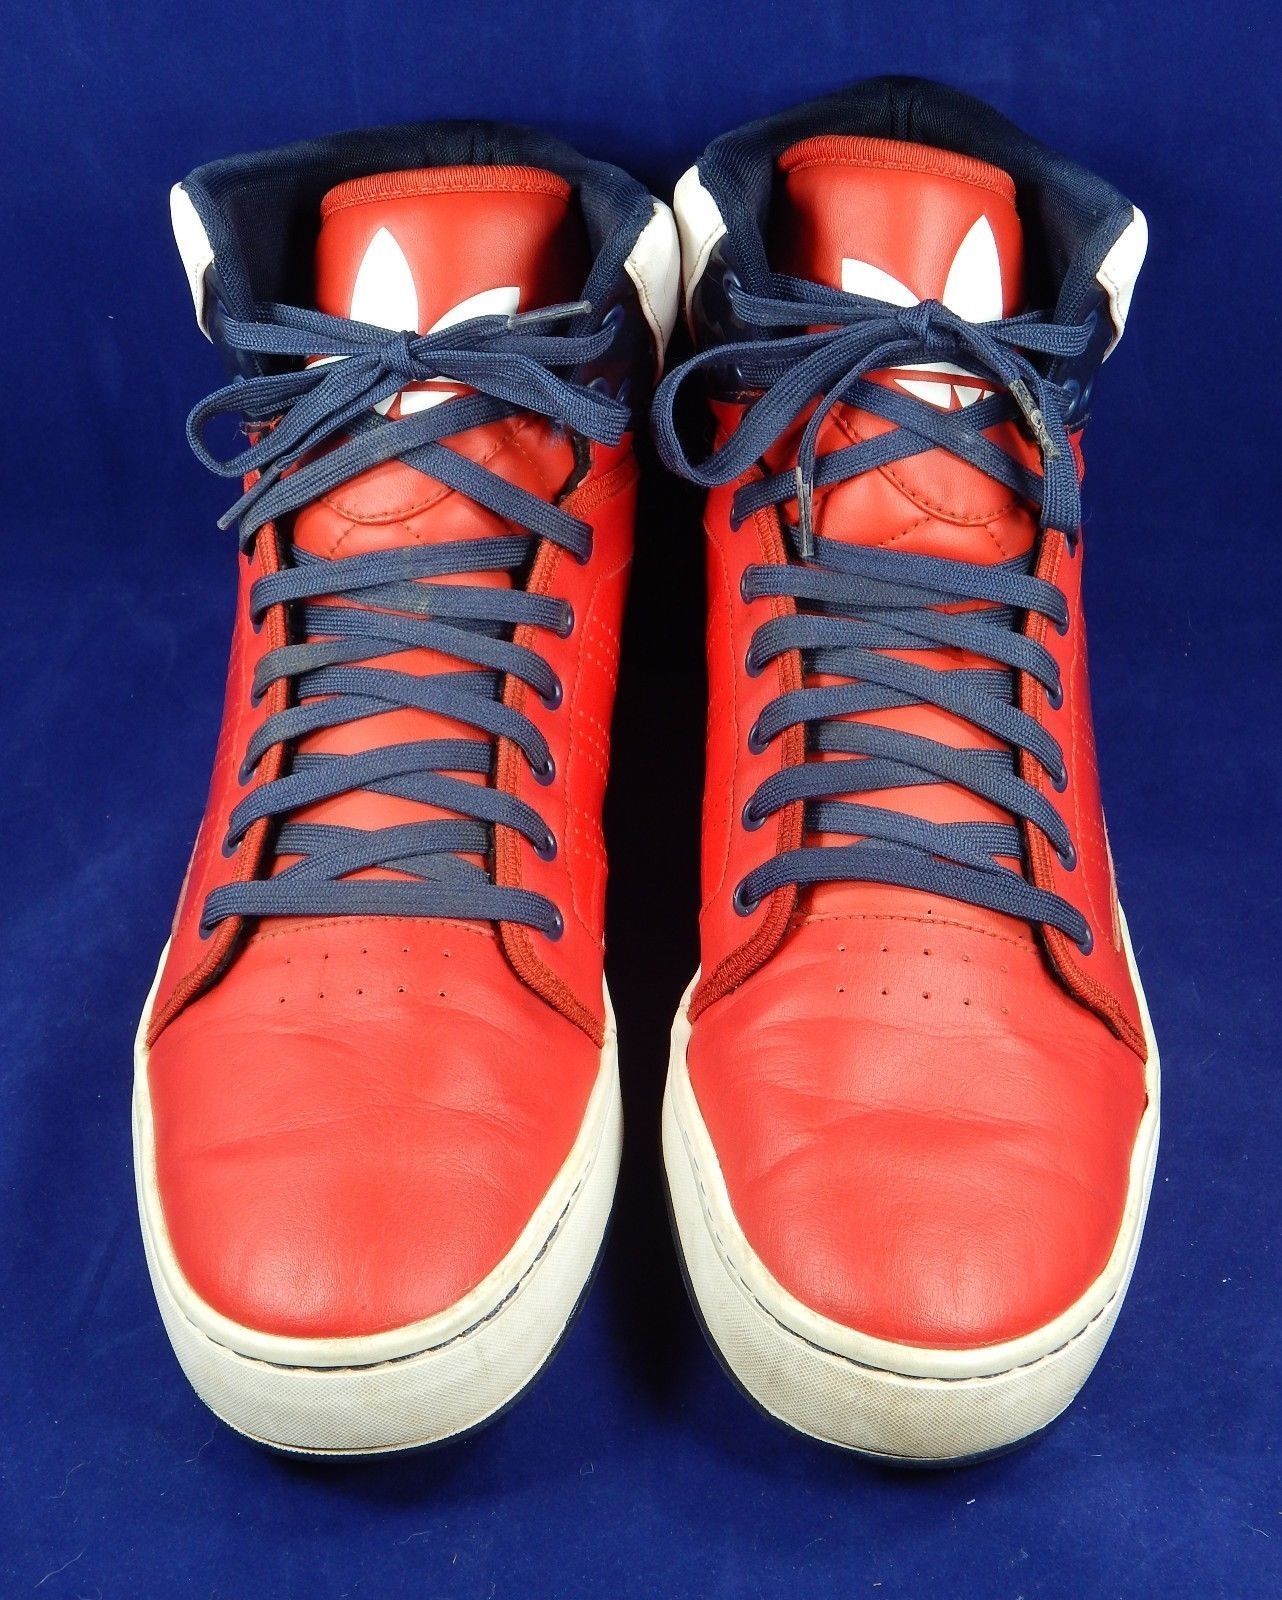 outlet store 38a57 493c3 Adidas G56624 Originals ADI High EXT Basketball Shoes Red White Blue Size  US 13